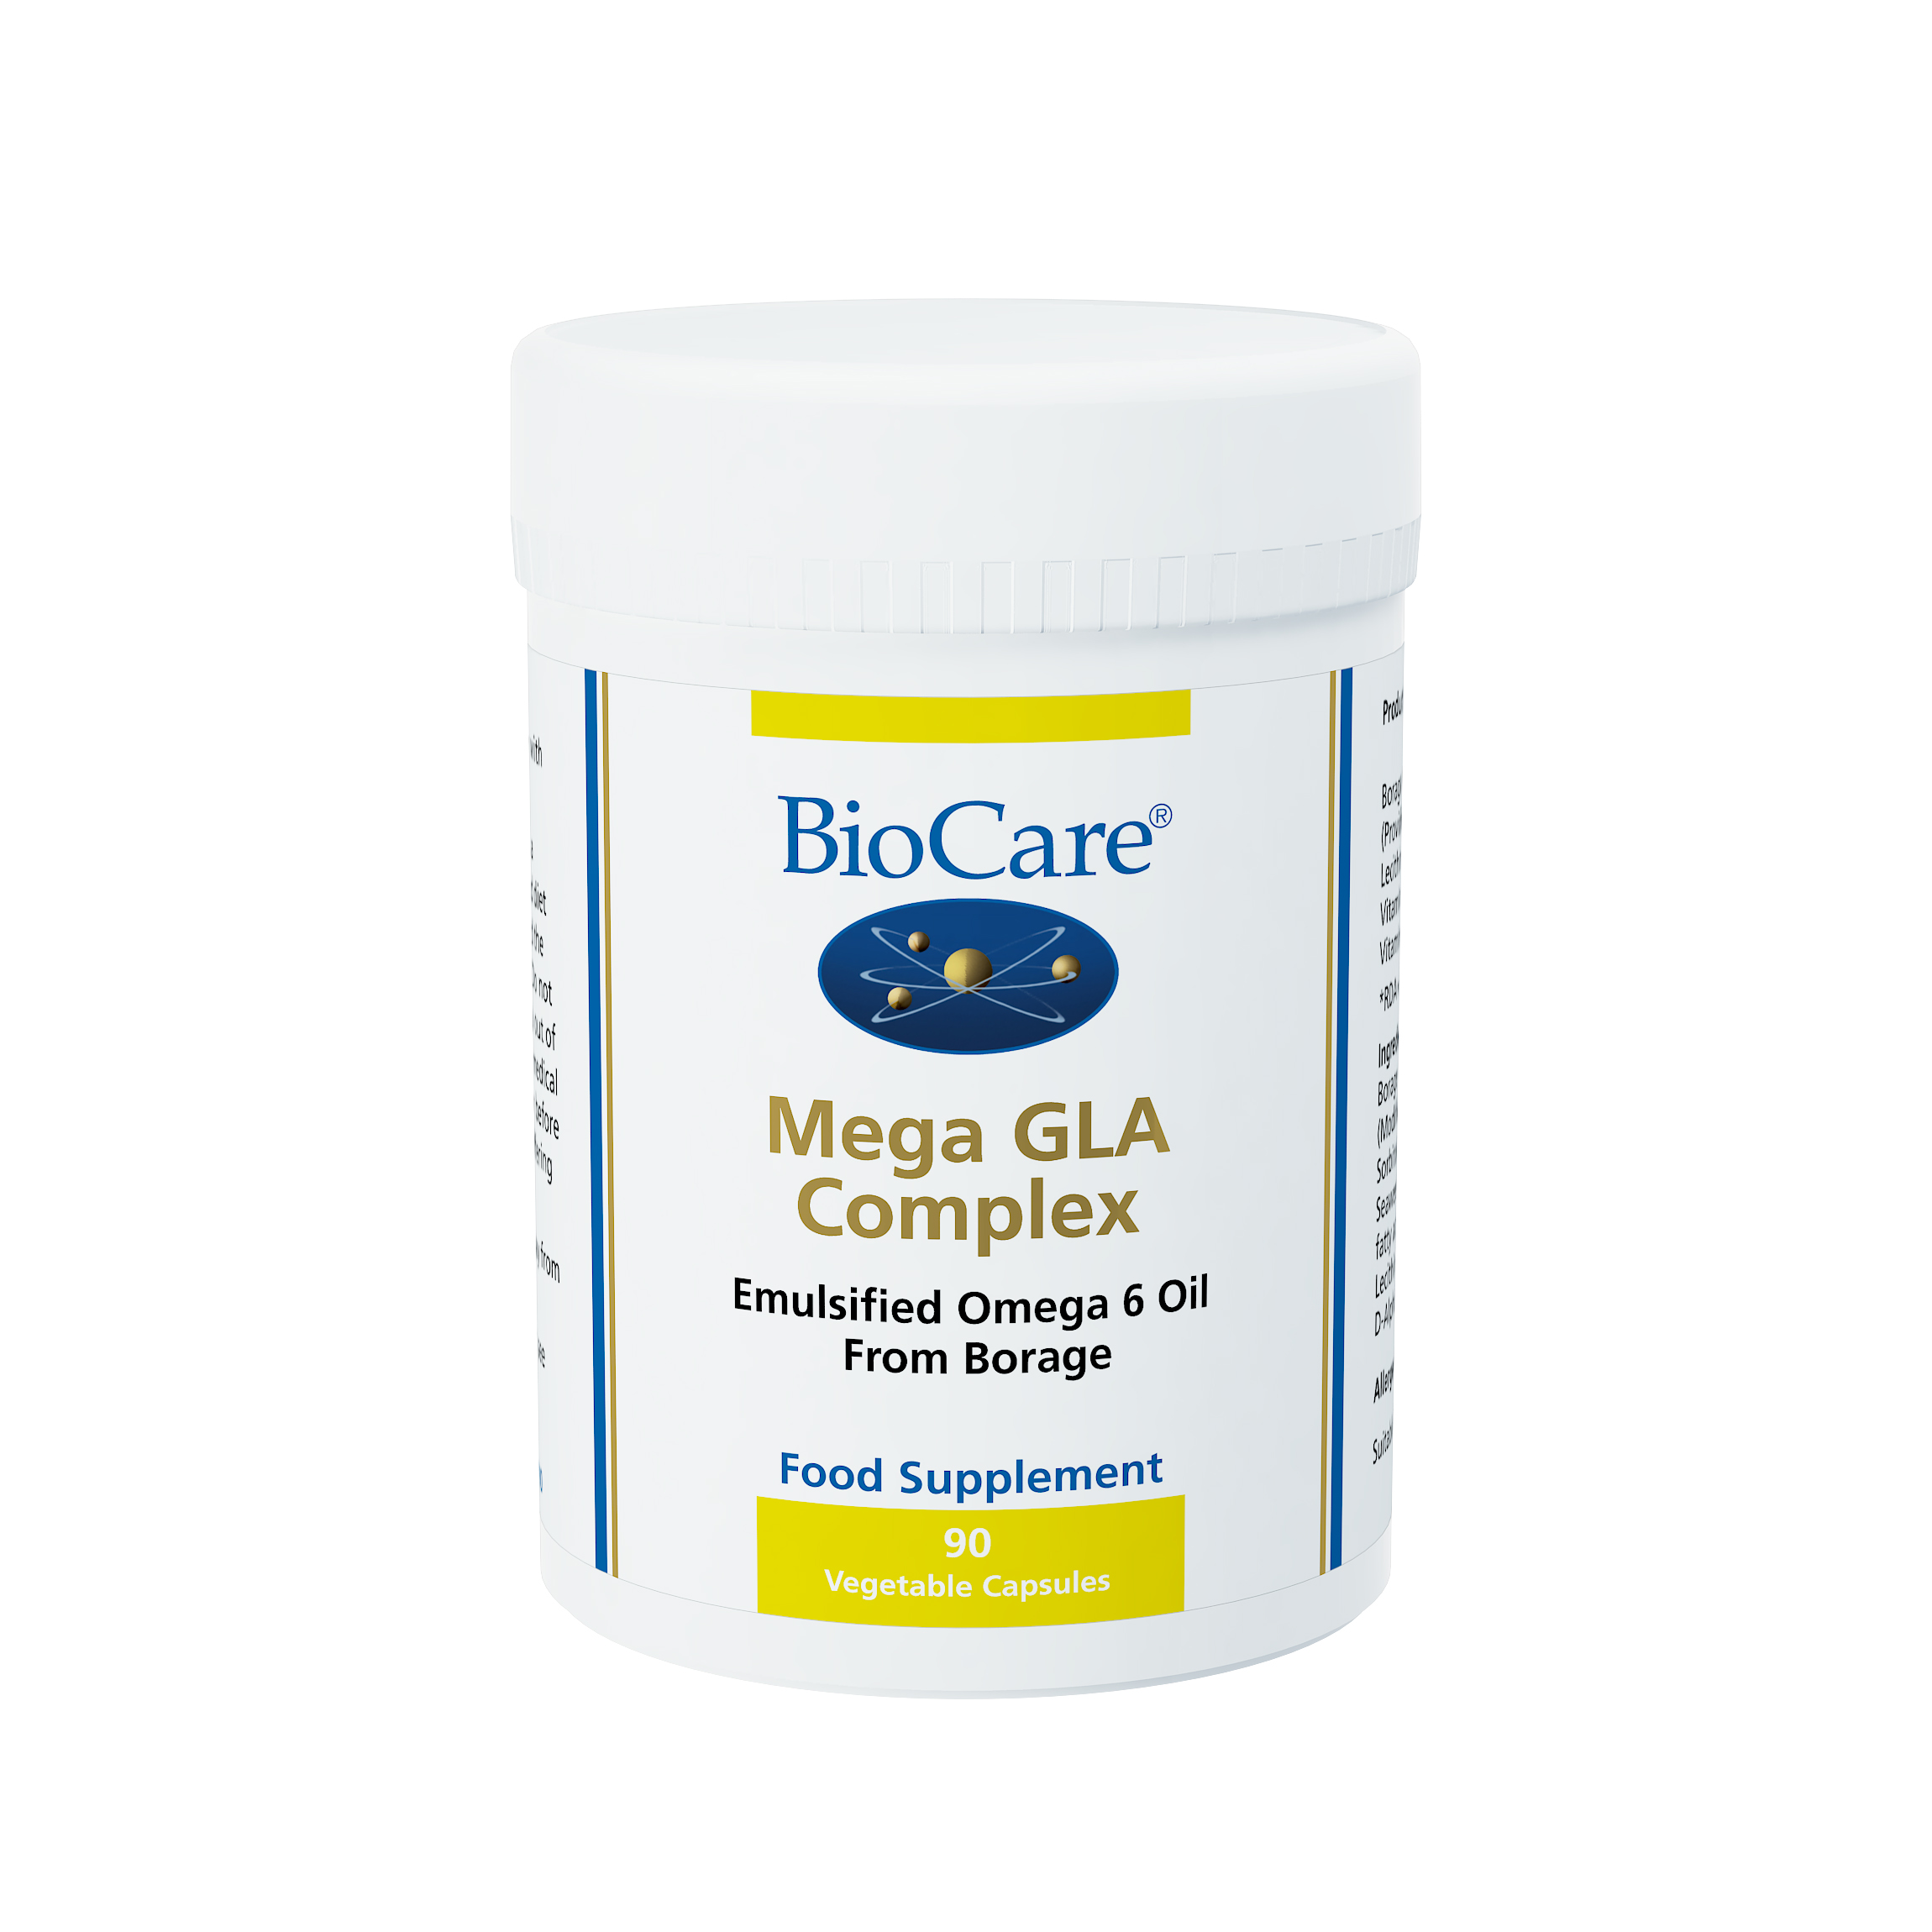 BioCare Mega GLA Complex 90 Vegetable Capsules